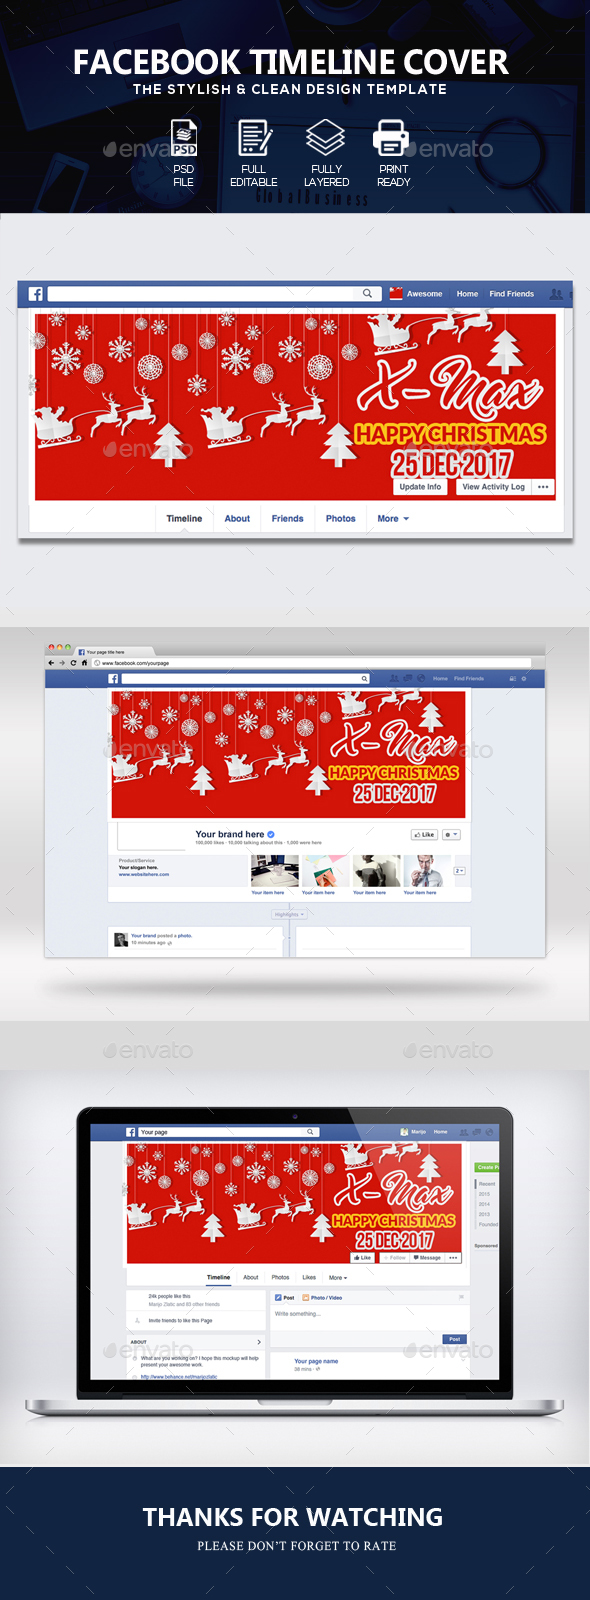 Christmas Facebook Timeline Cover - Facebook Timeline Covers Social Media